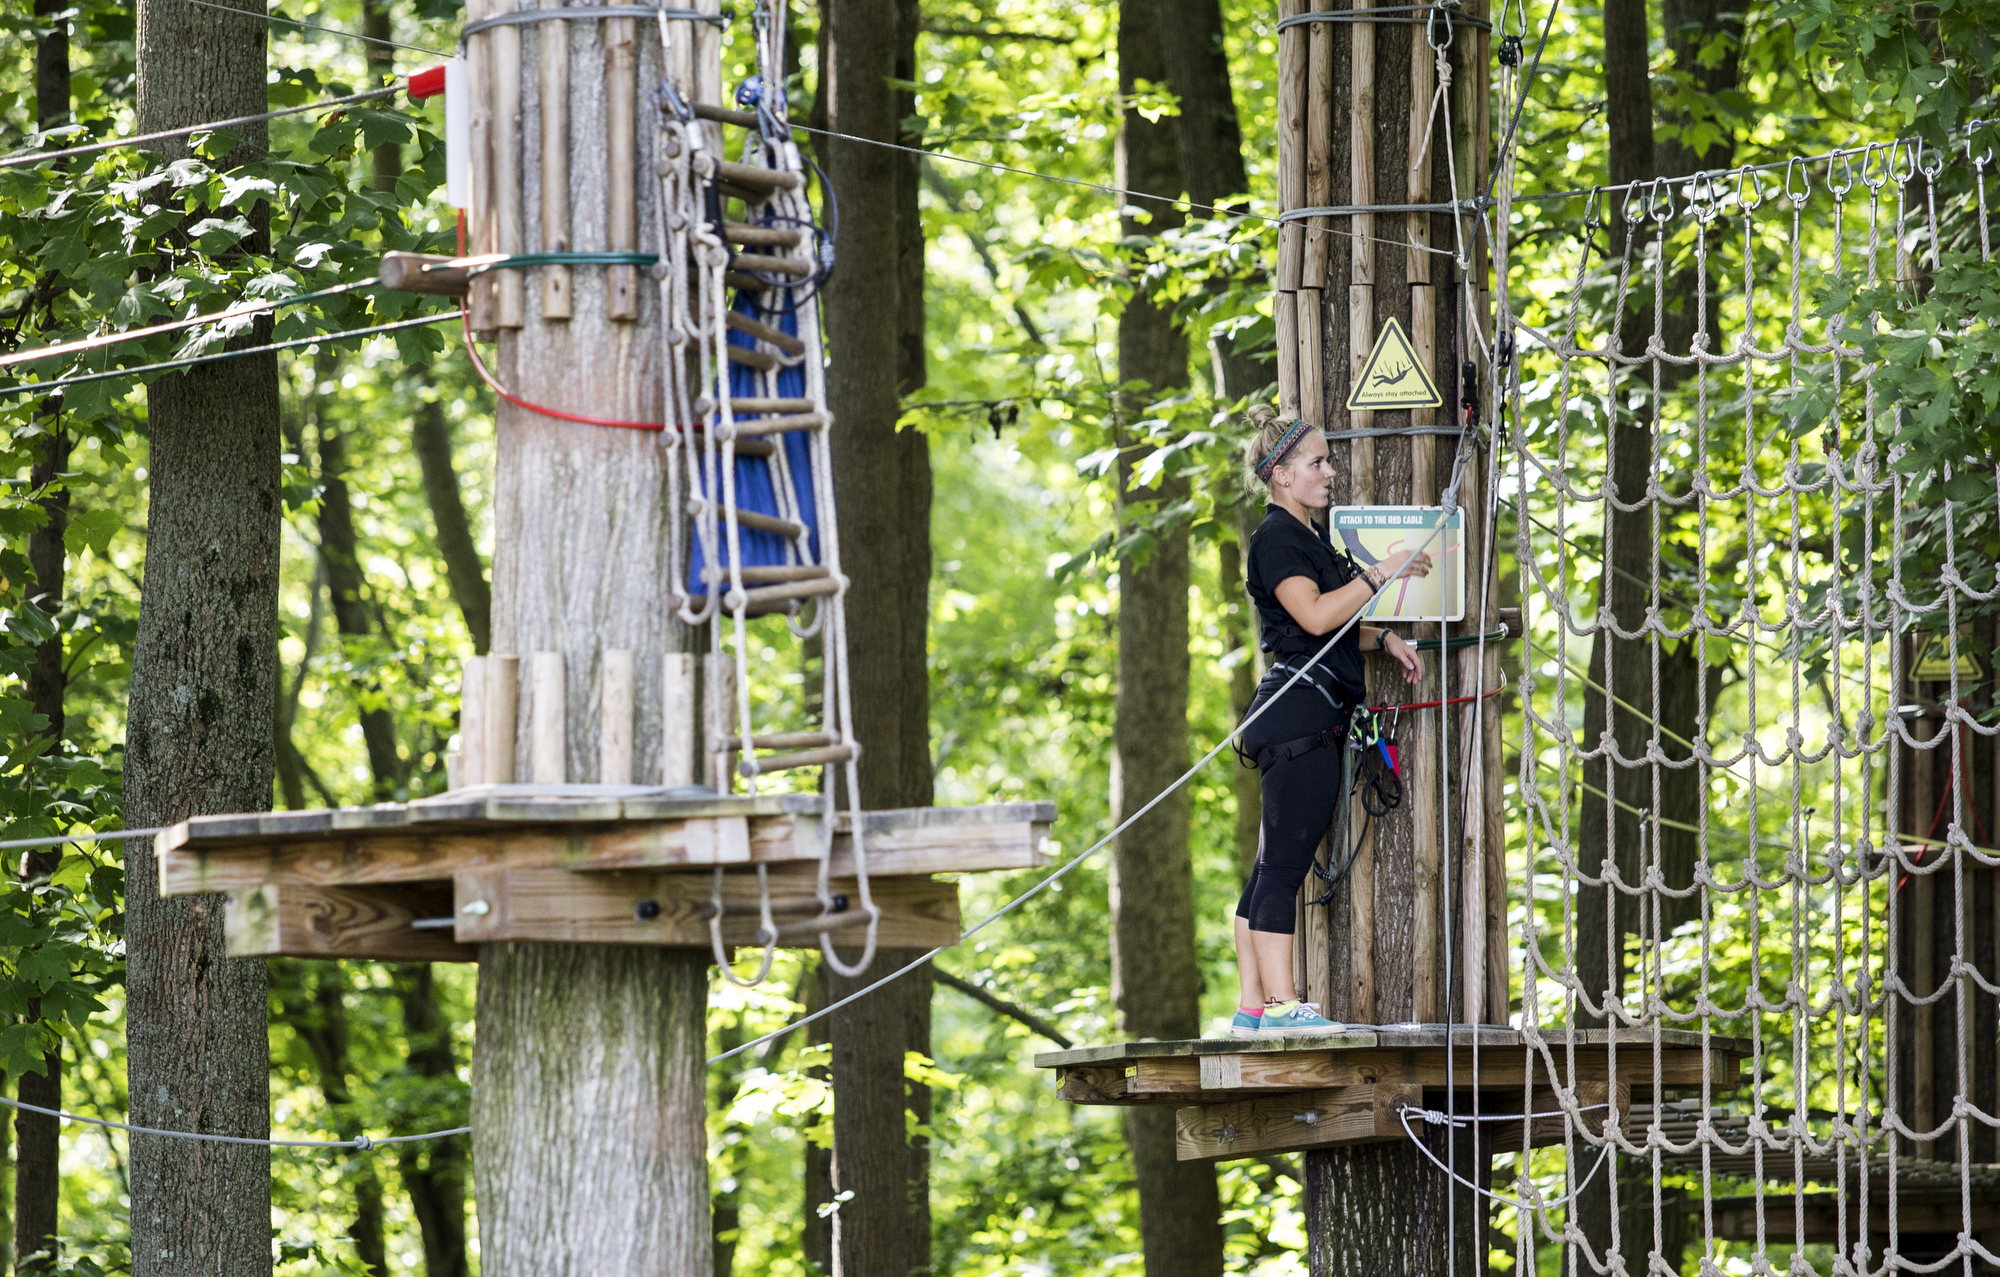 An employee closes up the Go Ape course for the day after a 59 year-old woman fell to her death at the zip line course in Lums Pond State Park in Bear, Del., Wednesday, Aug. 24, 2016.  Jeff Davis, a spokesman for Go Ape, said Thursday, Aug. 25, 2016, that the rides are inspected on a regular basis. Davis said the Lums Pond attraction is closed for undetermined amount of time to help with the investigation,  and also in respect to the family of the person who died.   The Go Ape company is extremely saddened by this,  he said. (Kyle Grantham/The Wilmington News-Journal via AP)